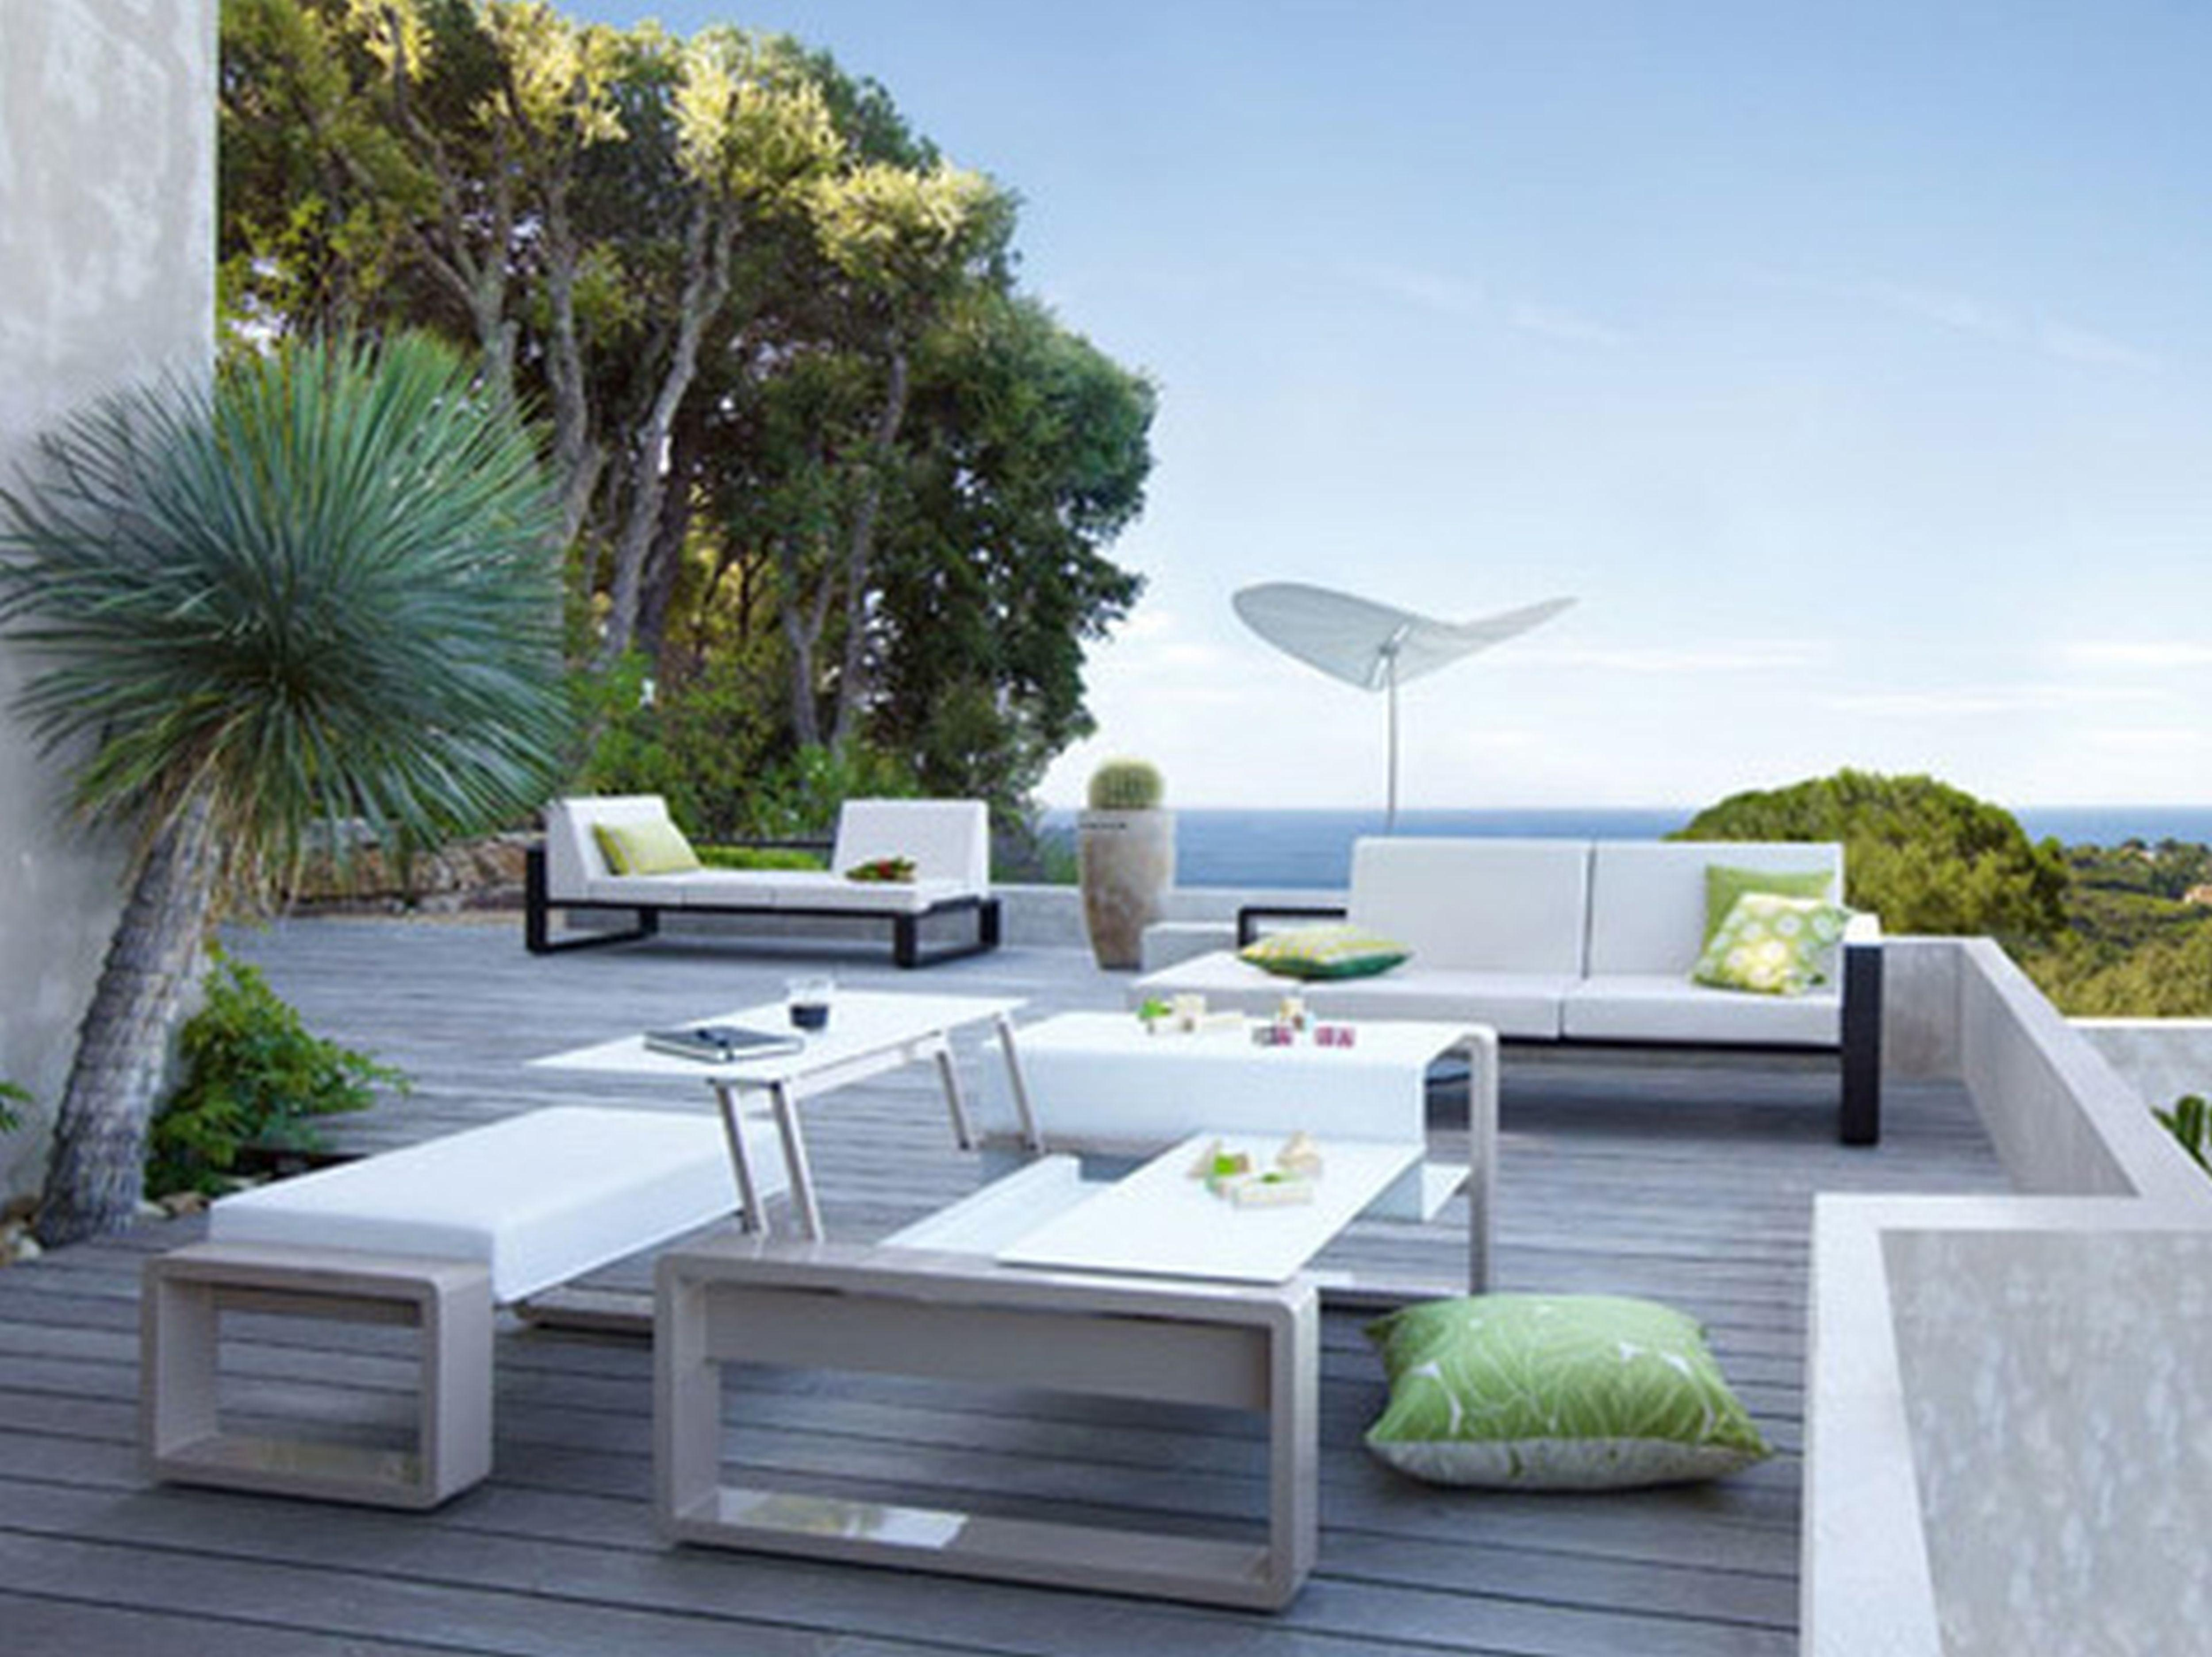 39 Crazy Modern Deck Furniture Ideas That Look Like From The Fairy Tales Beautiful Decoratorist